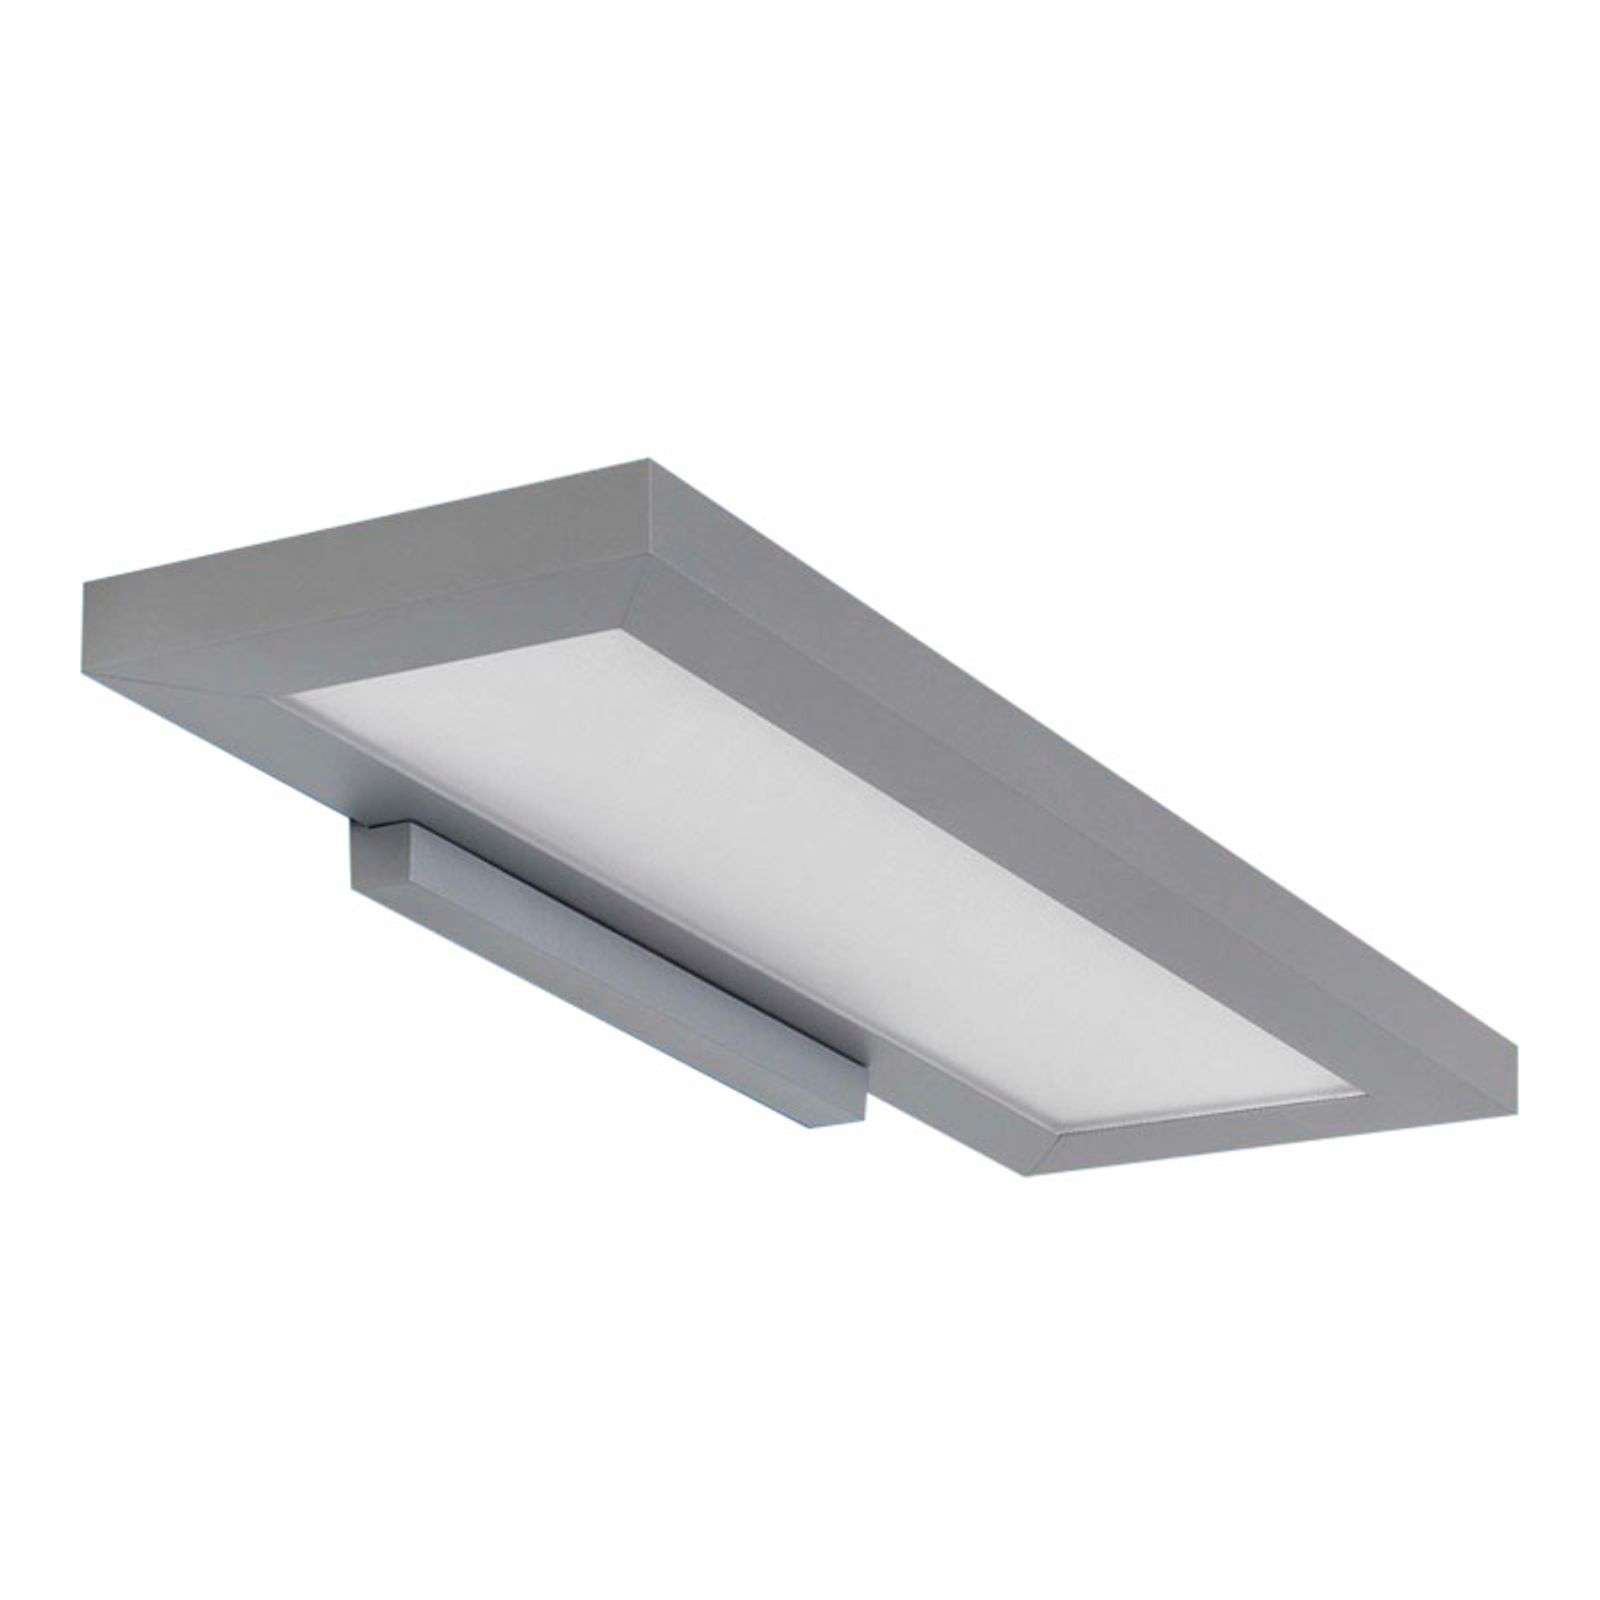 Applique LED CWP à vitre opale, 51 W